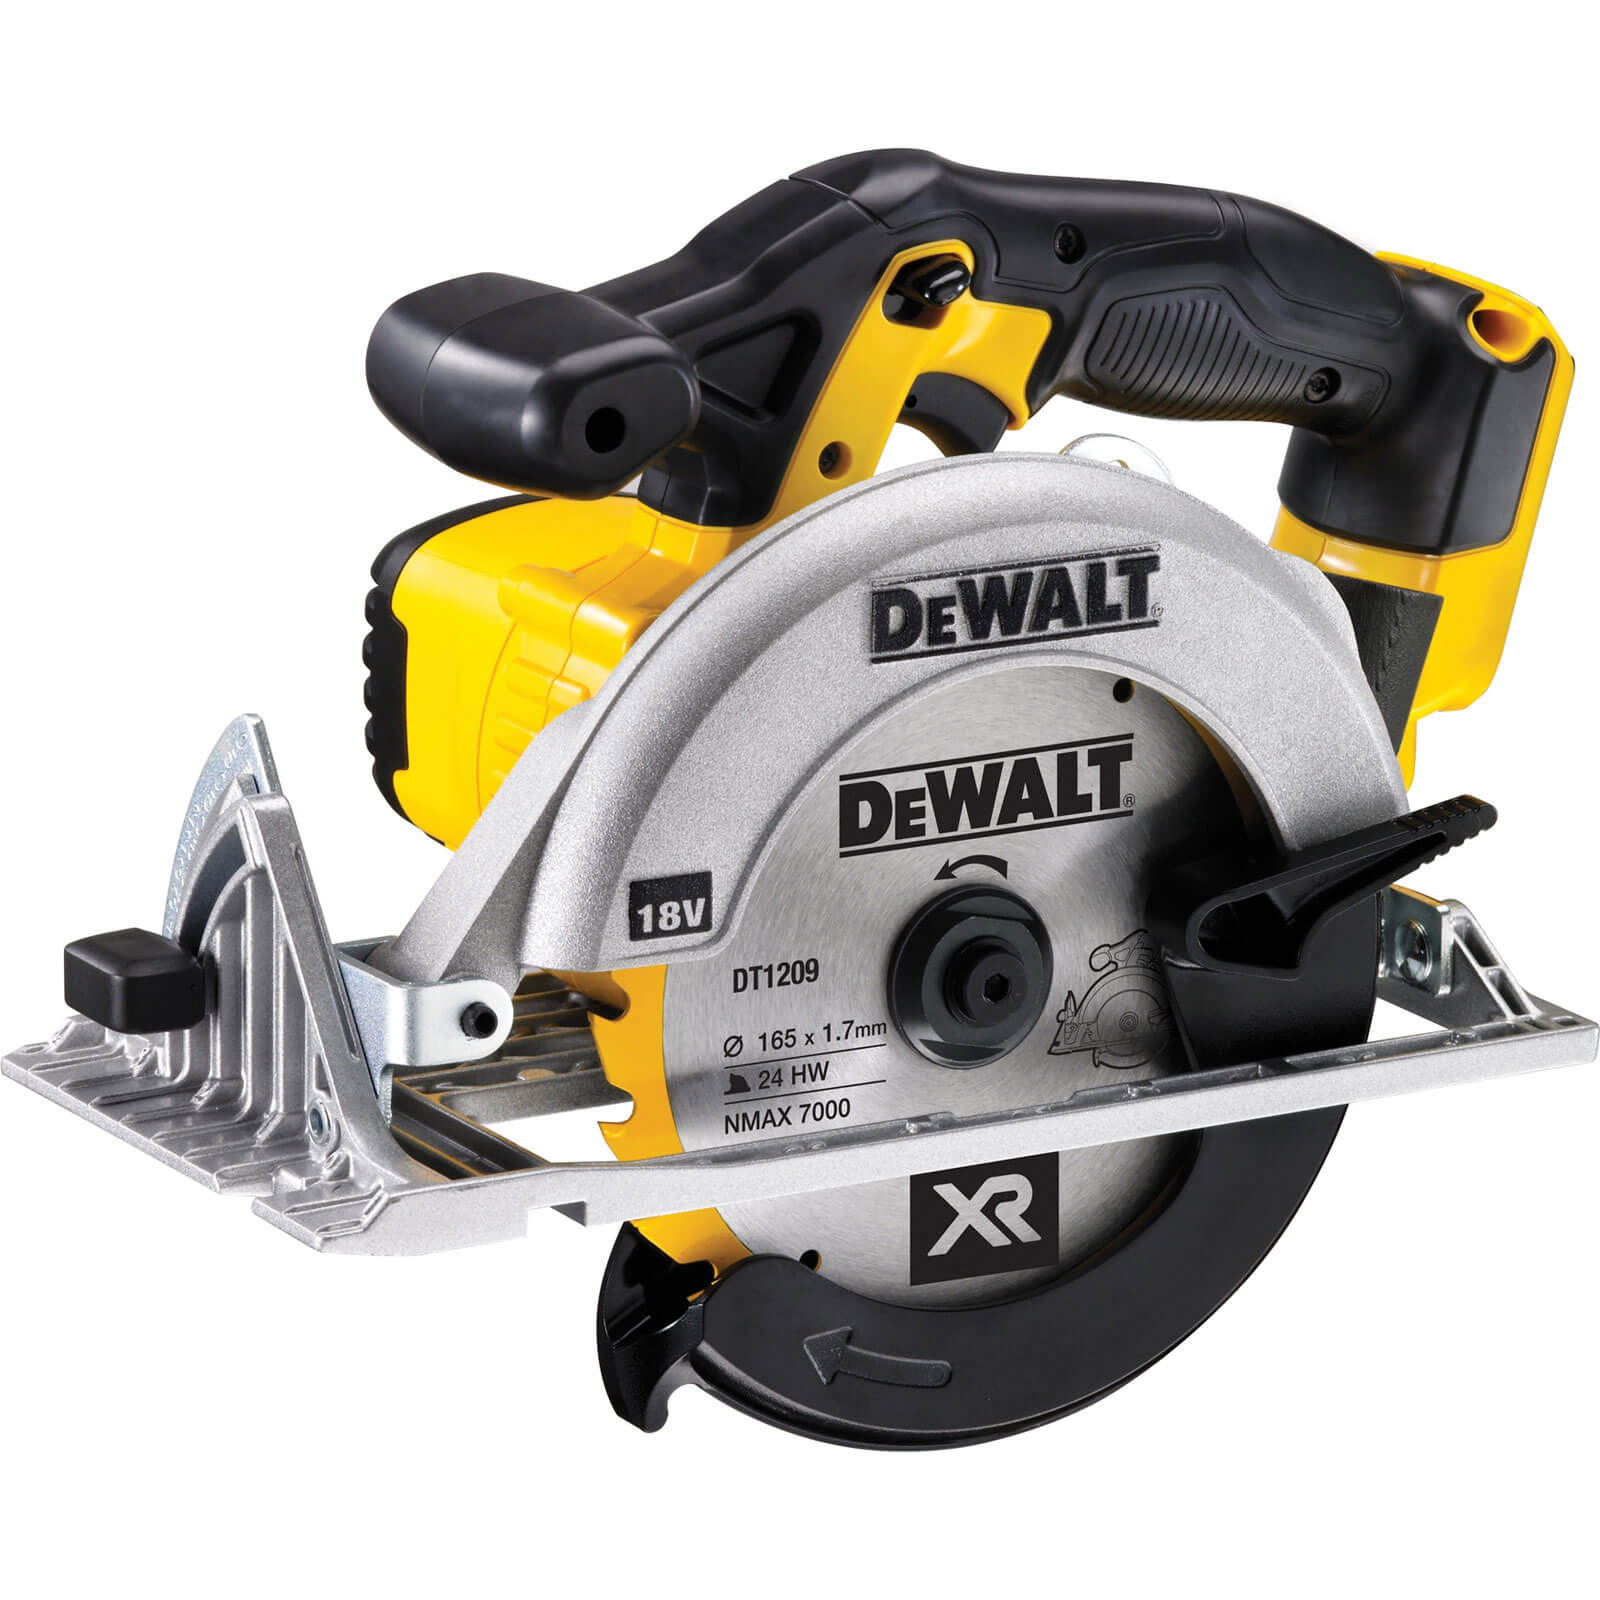 Image of DeWalt DCS391N 18v Cordless XR Circular Saw 165mm Blade without Battery or Charger